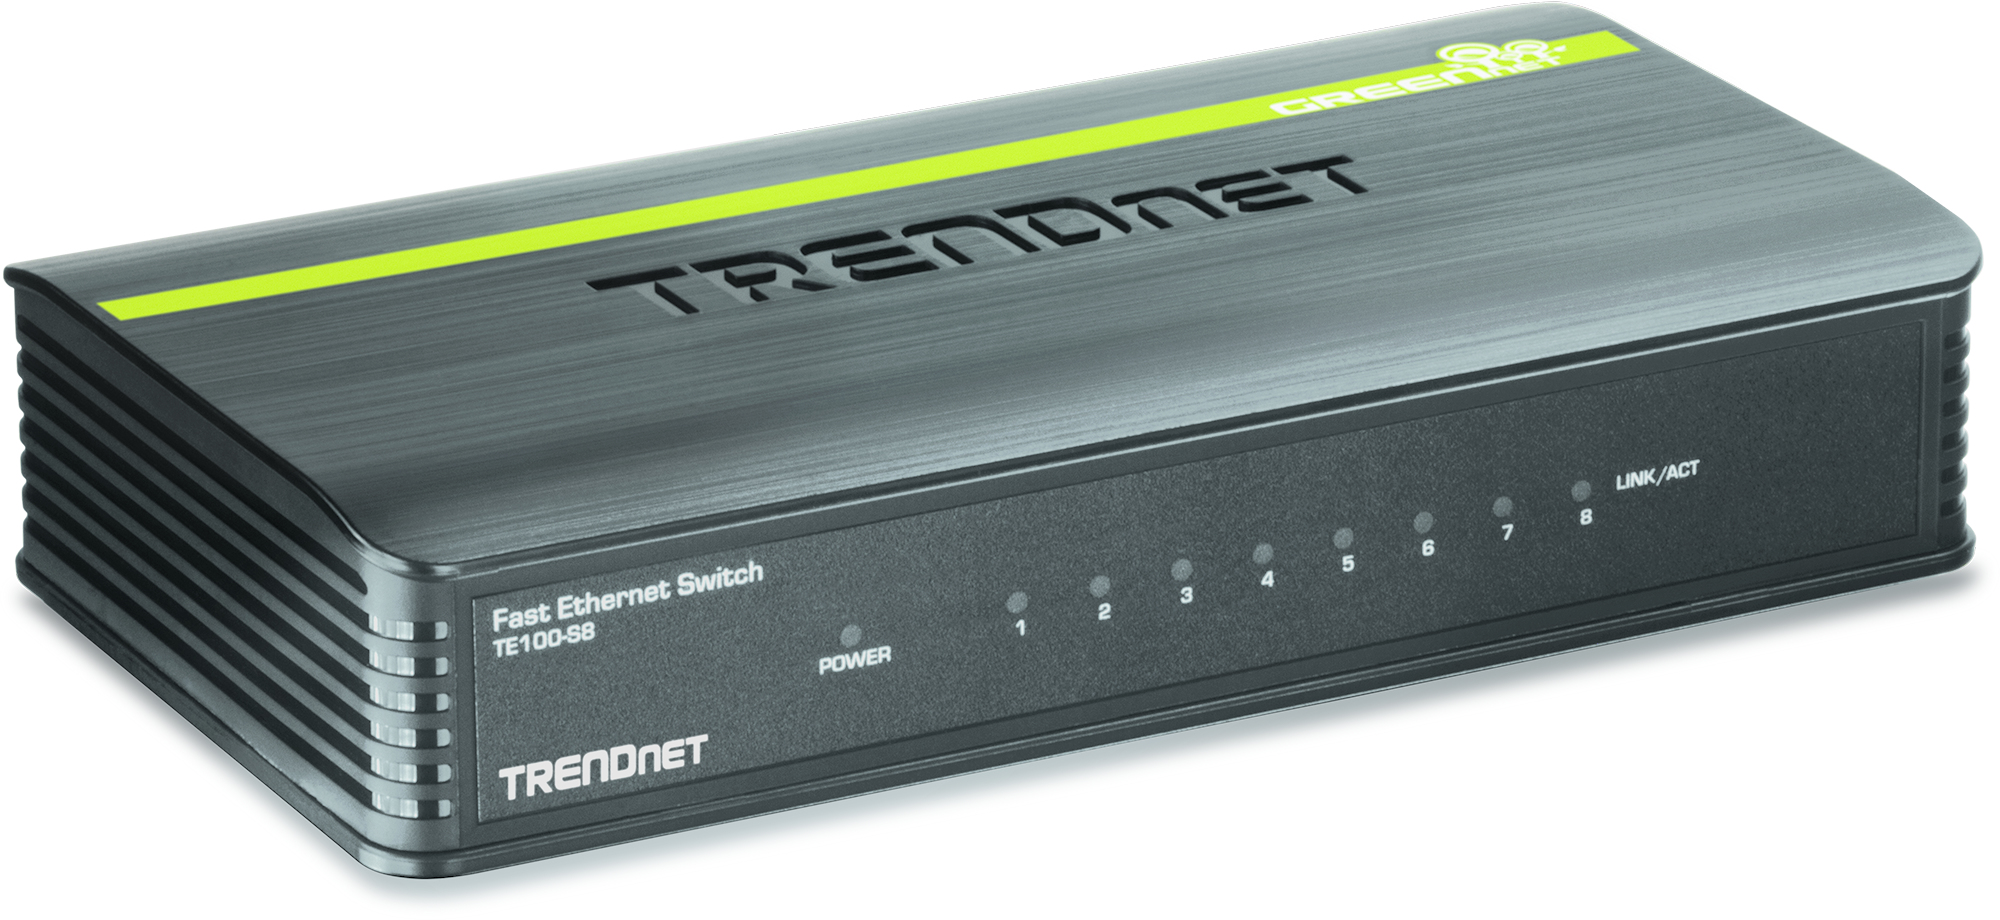 Trendnet 8-Port 10/100Mbps Switch Unmanaged